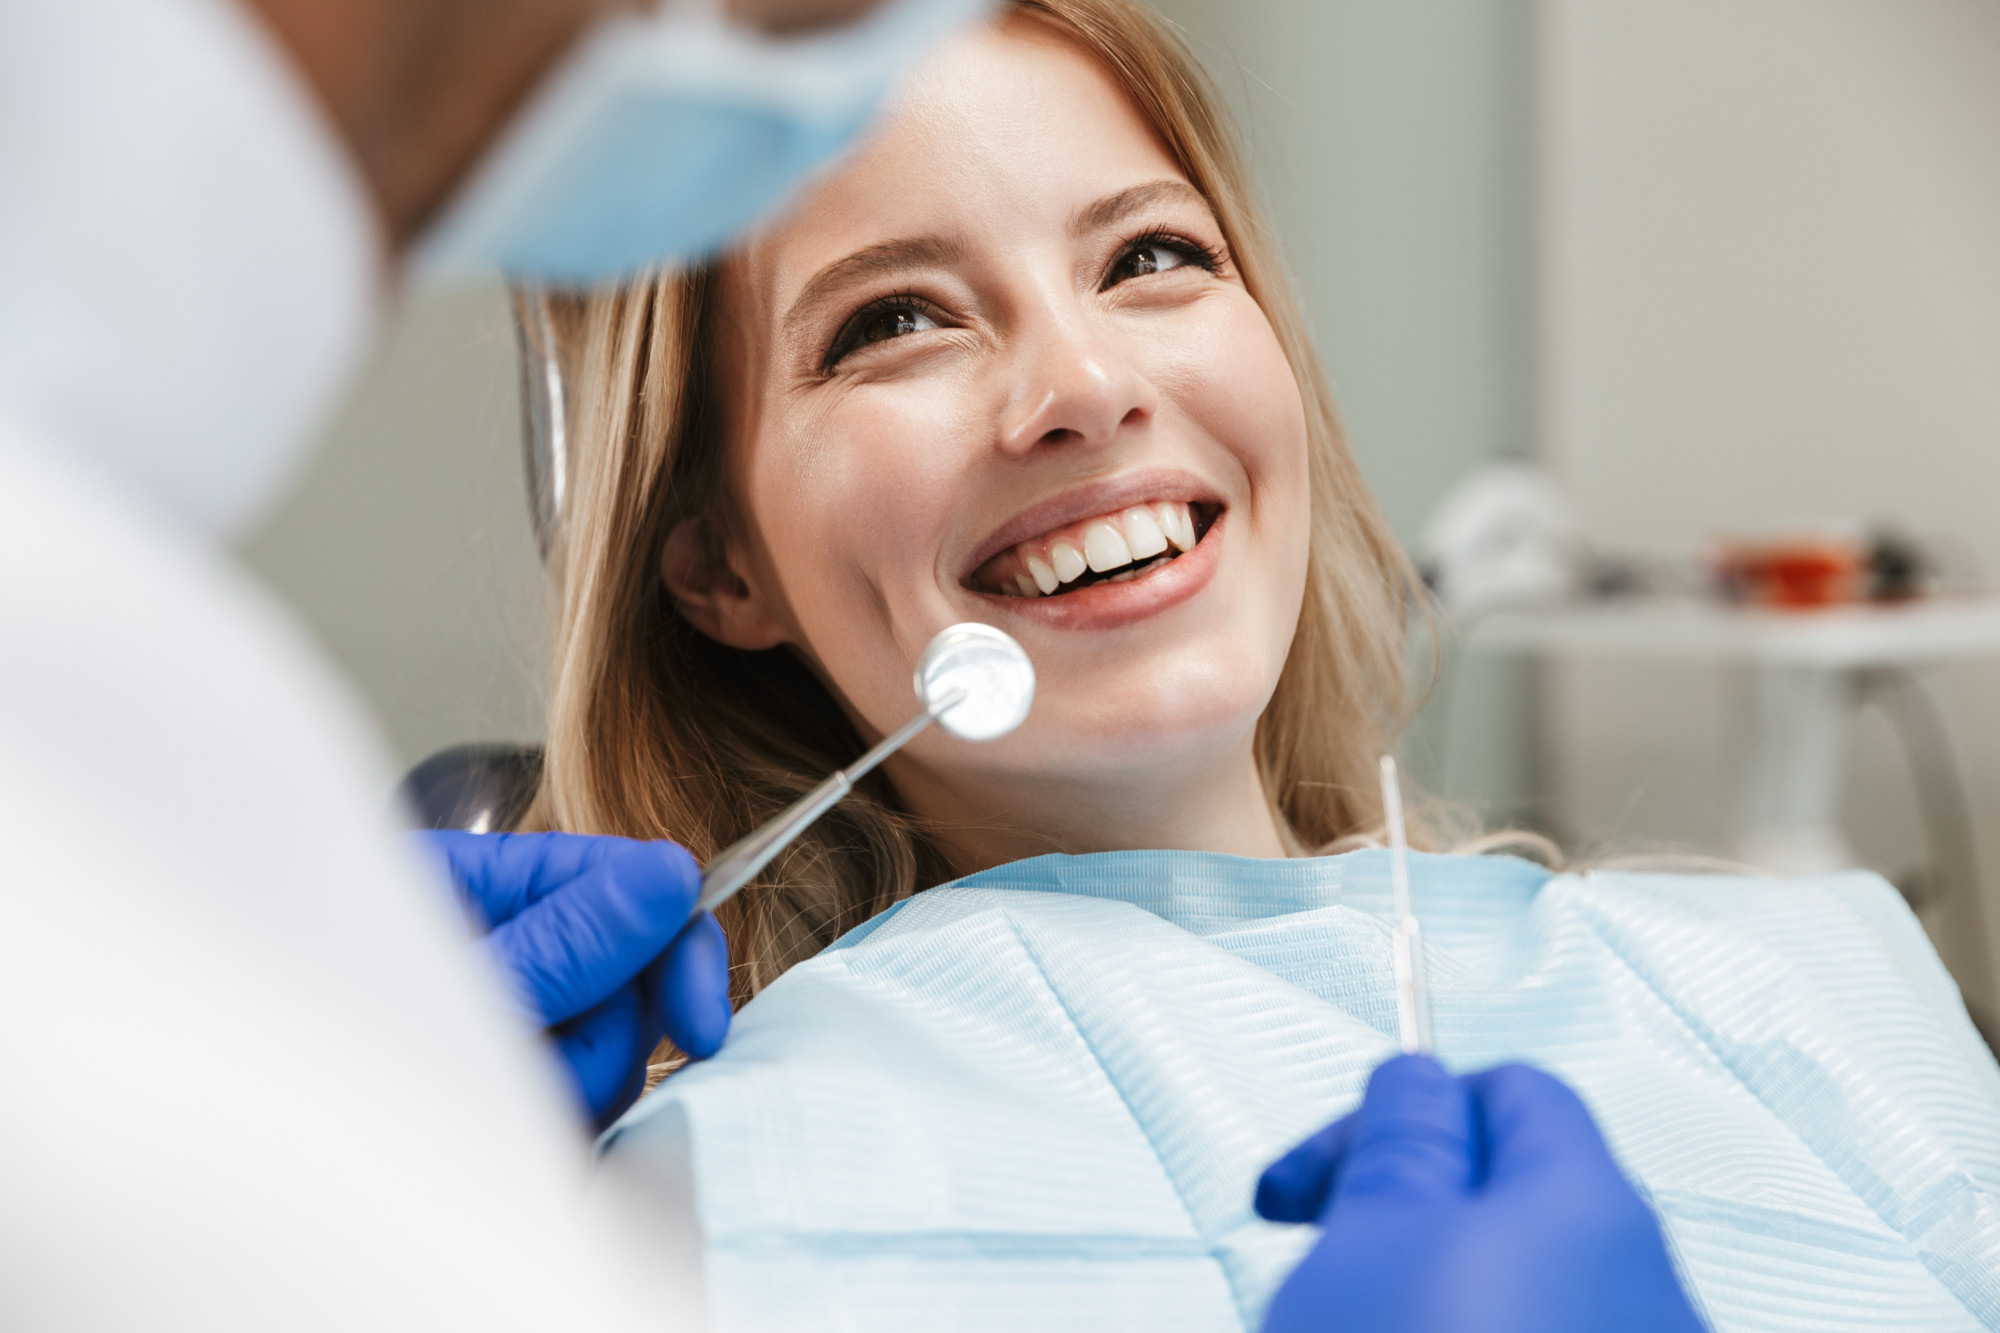 woman receiving dental fillings while sitting in dental chair